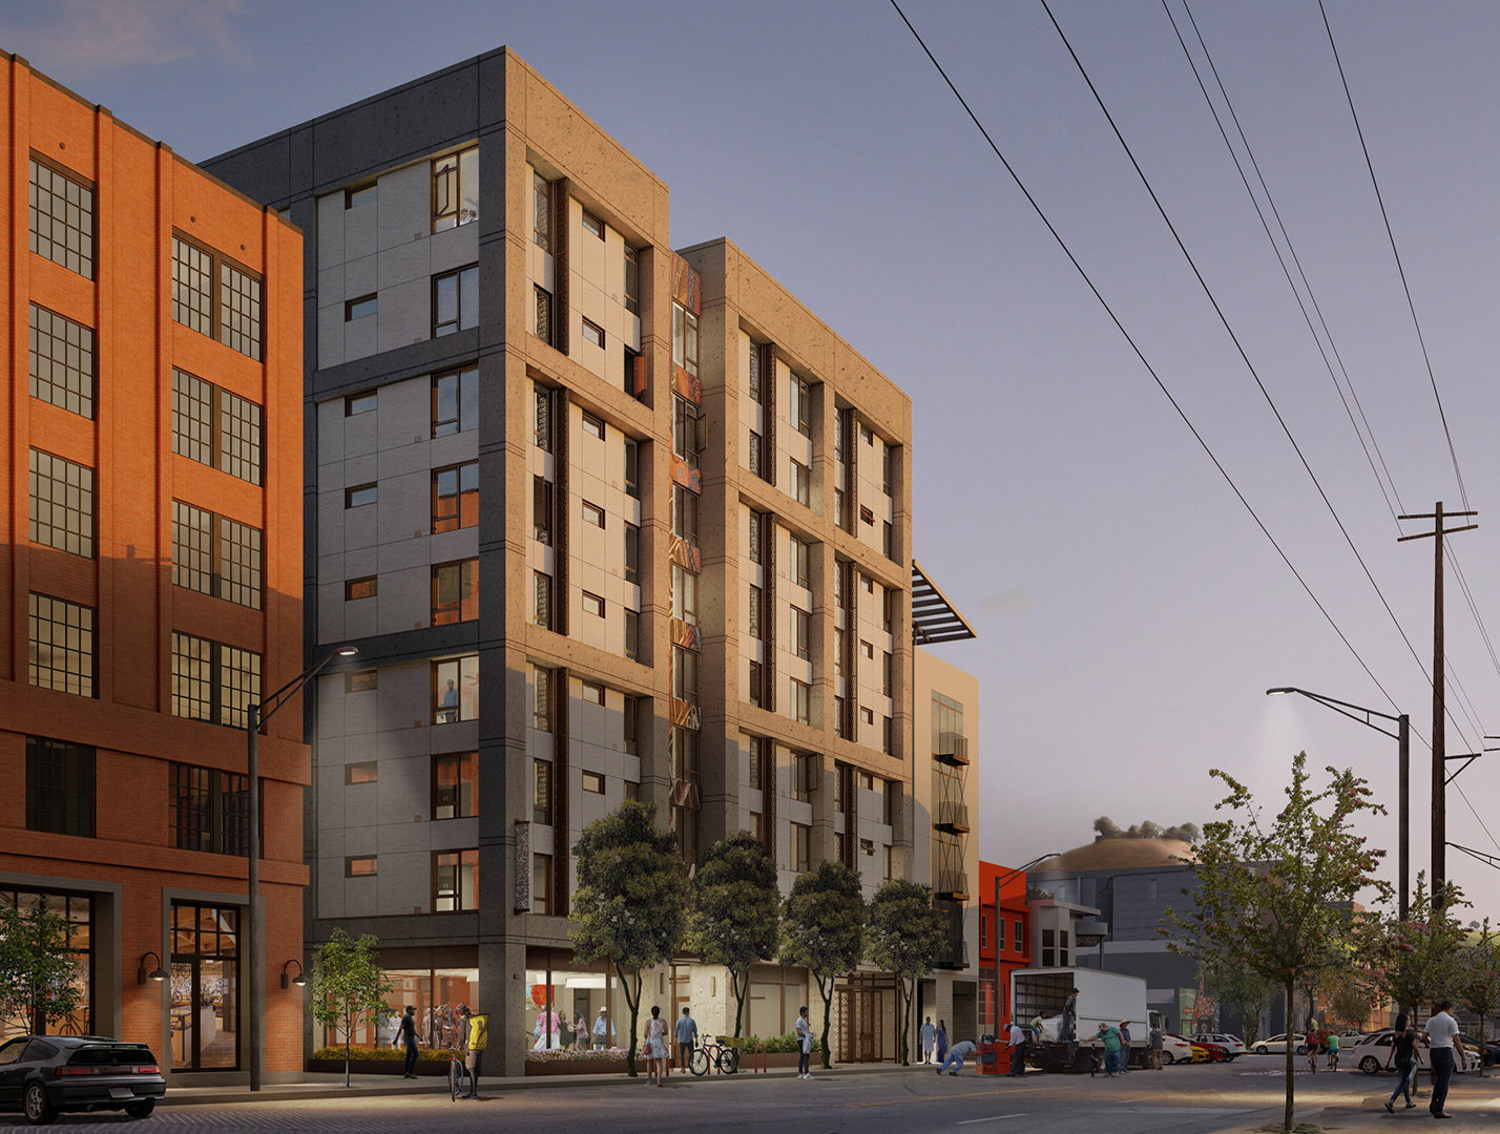 681 Florida Street view from Florida Street, rendering by Mithun